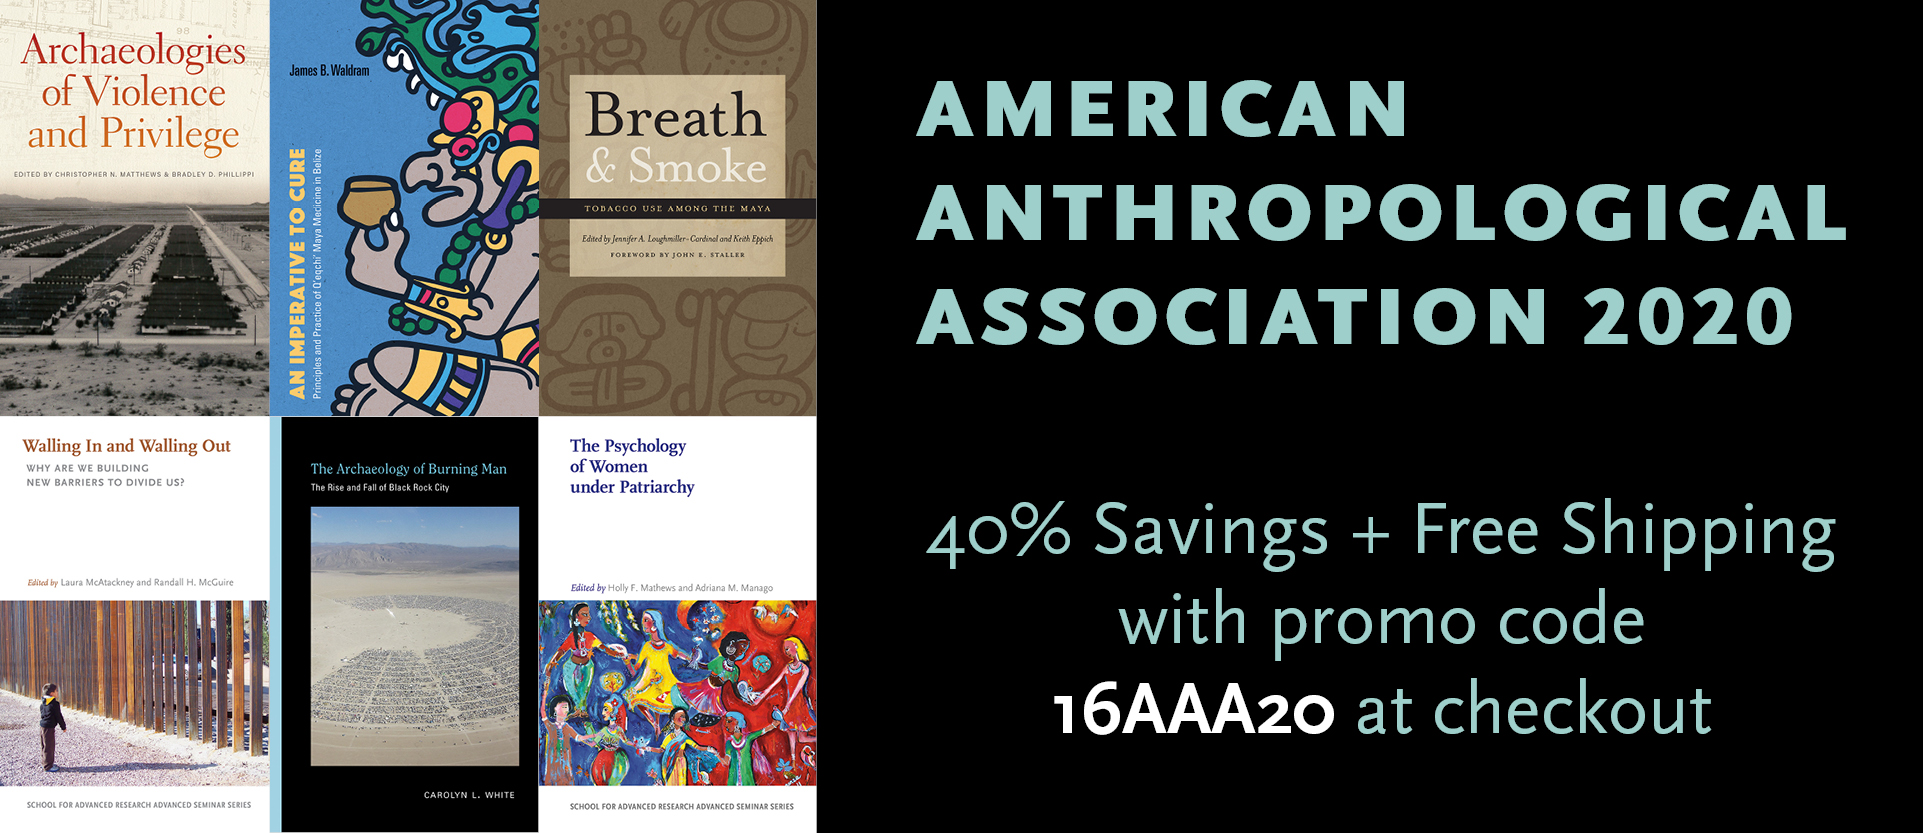 American Anthropological Association 2020 Banner